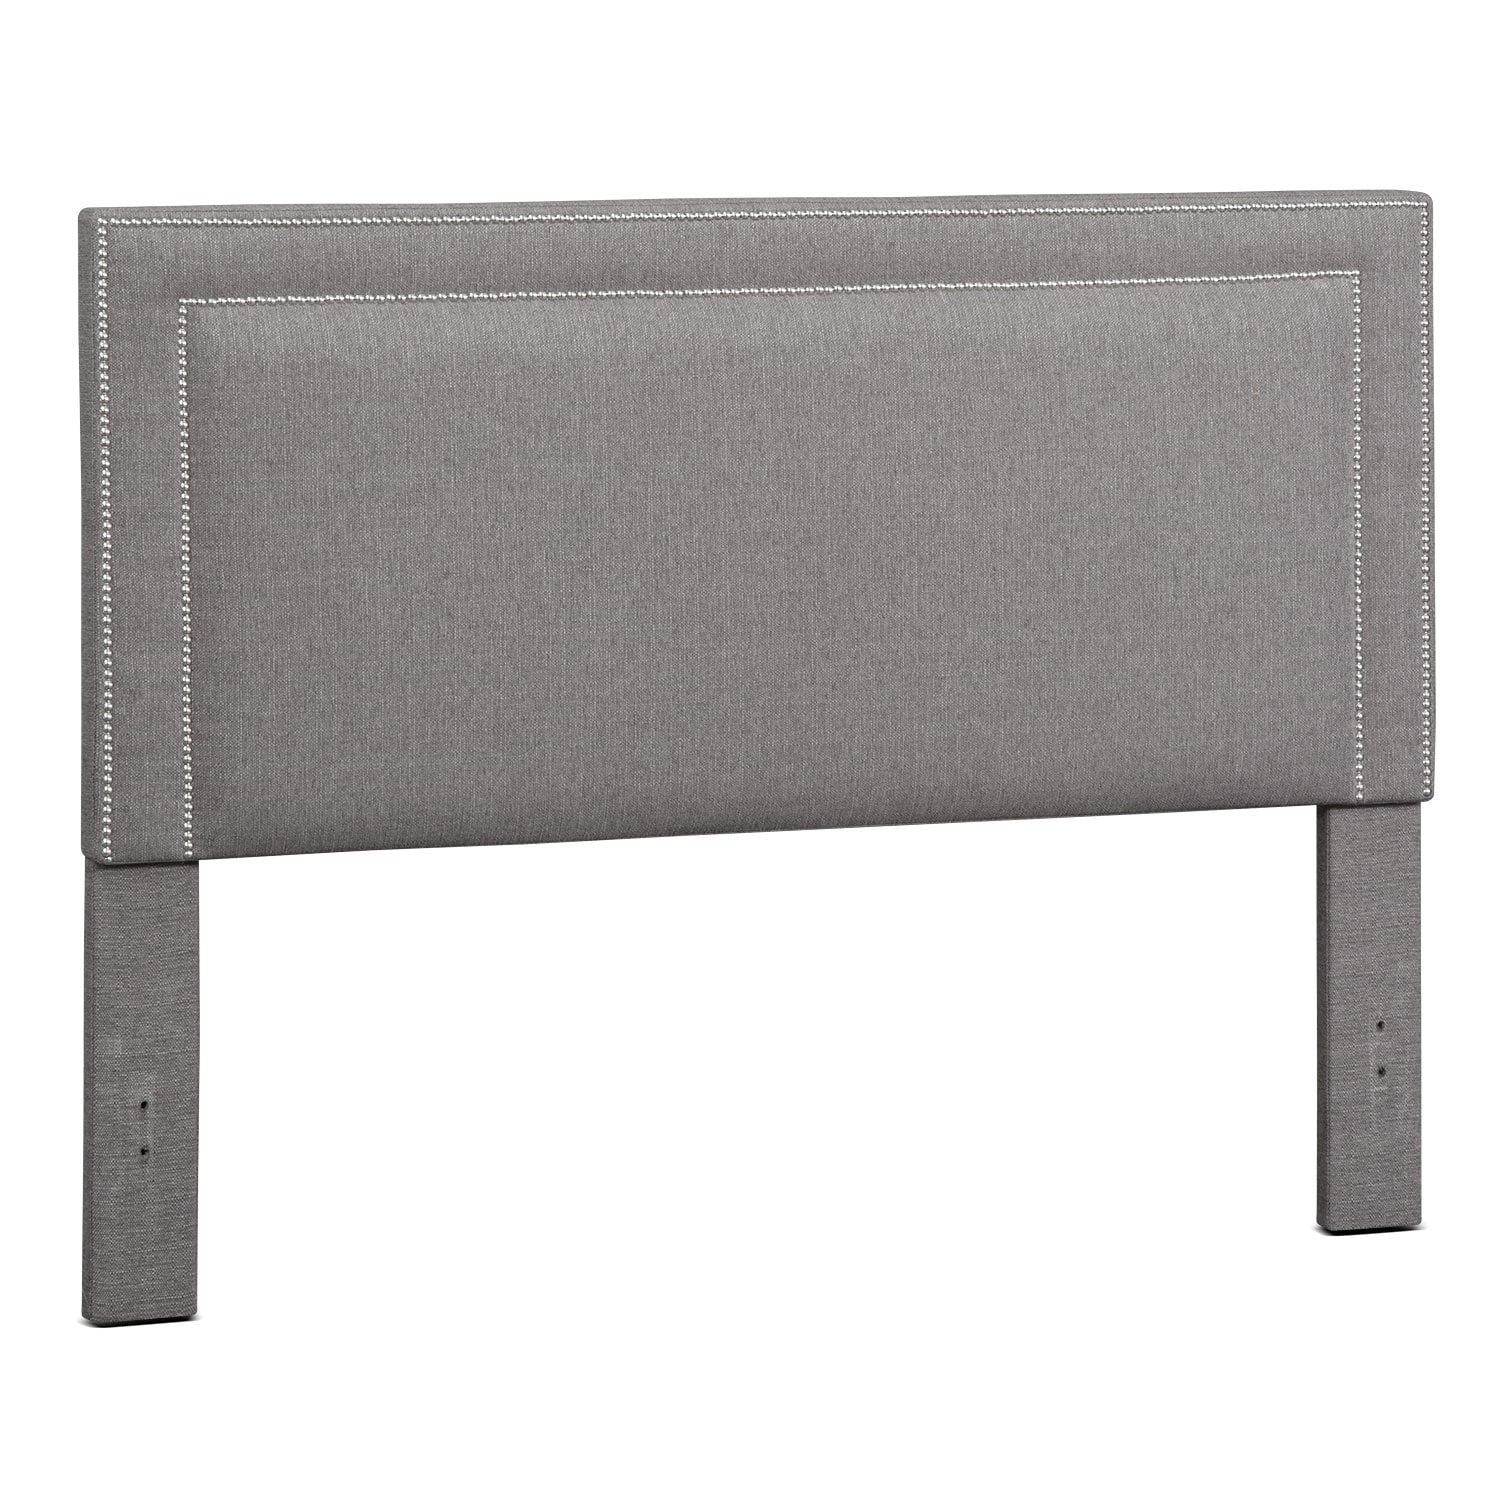 Natalie King Upholstered Headboard - Granite